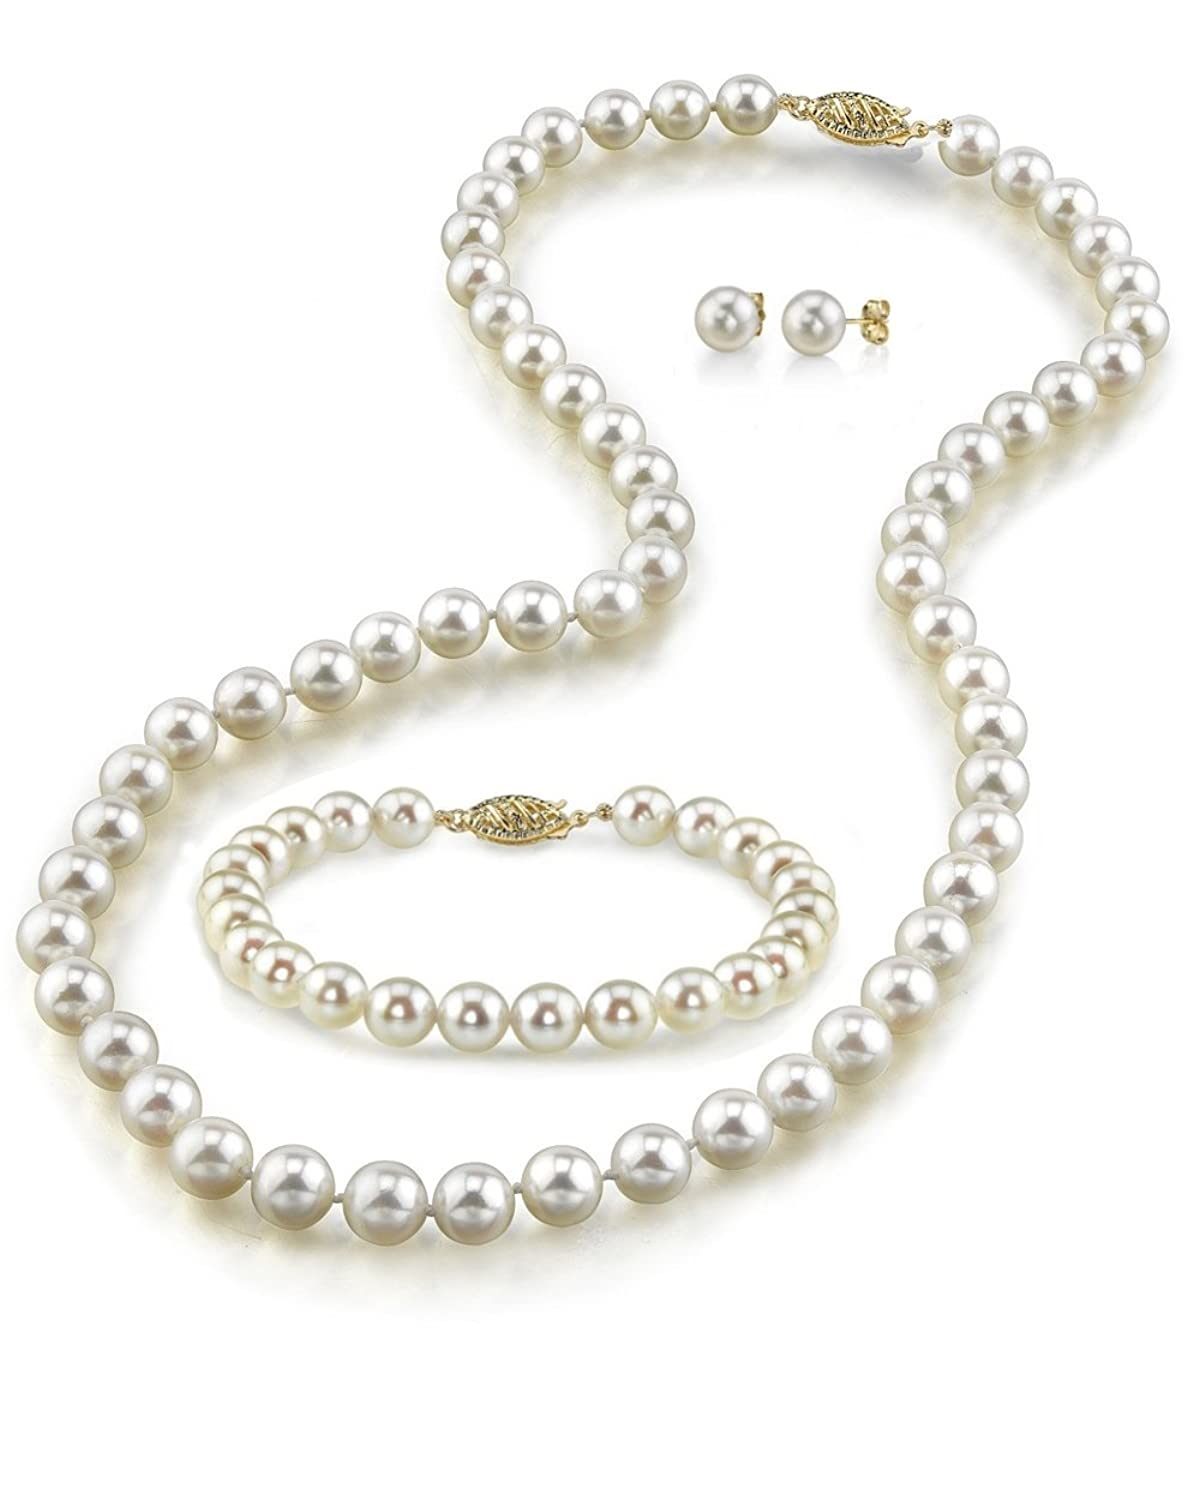 """14K Gold 9-10mm White Freshwater Cultured Pearl Necklace, Bracelet & Earrings Set, 16"""" - AAA Quality"""